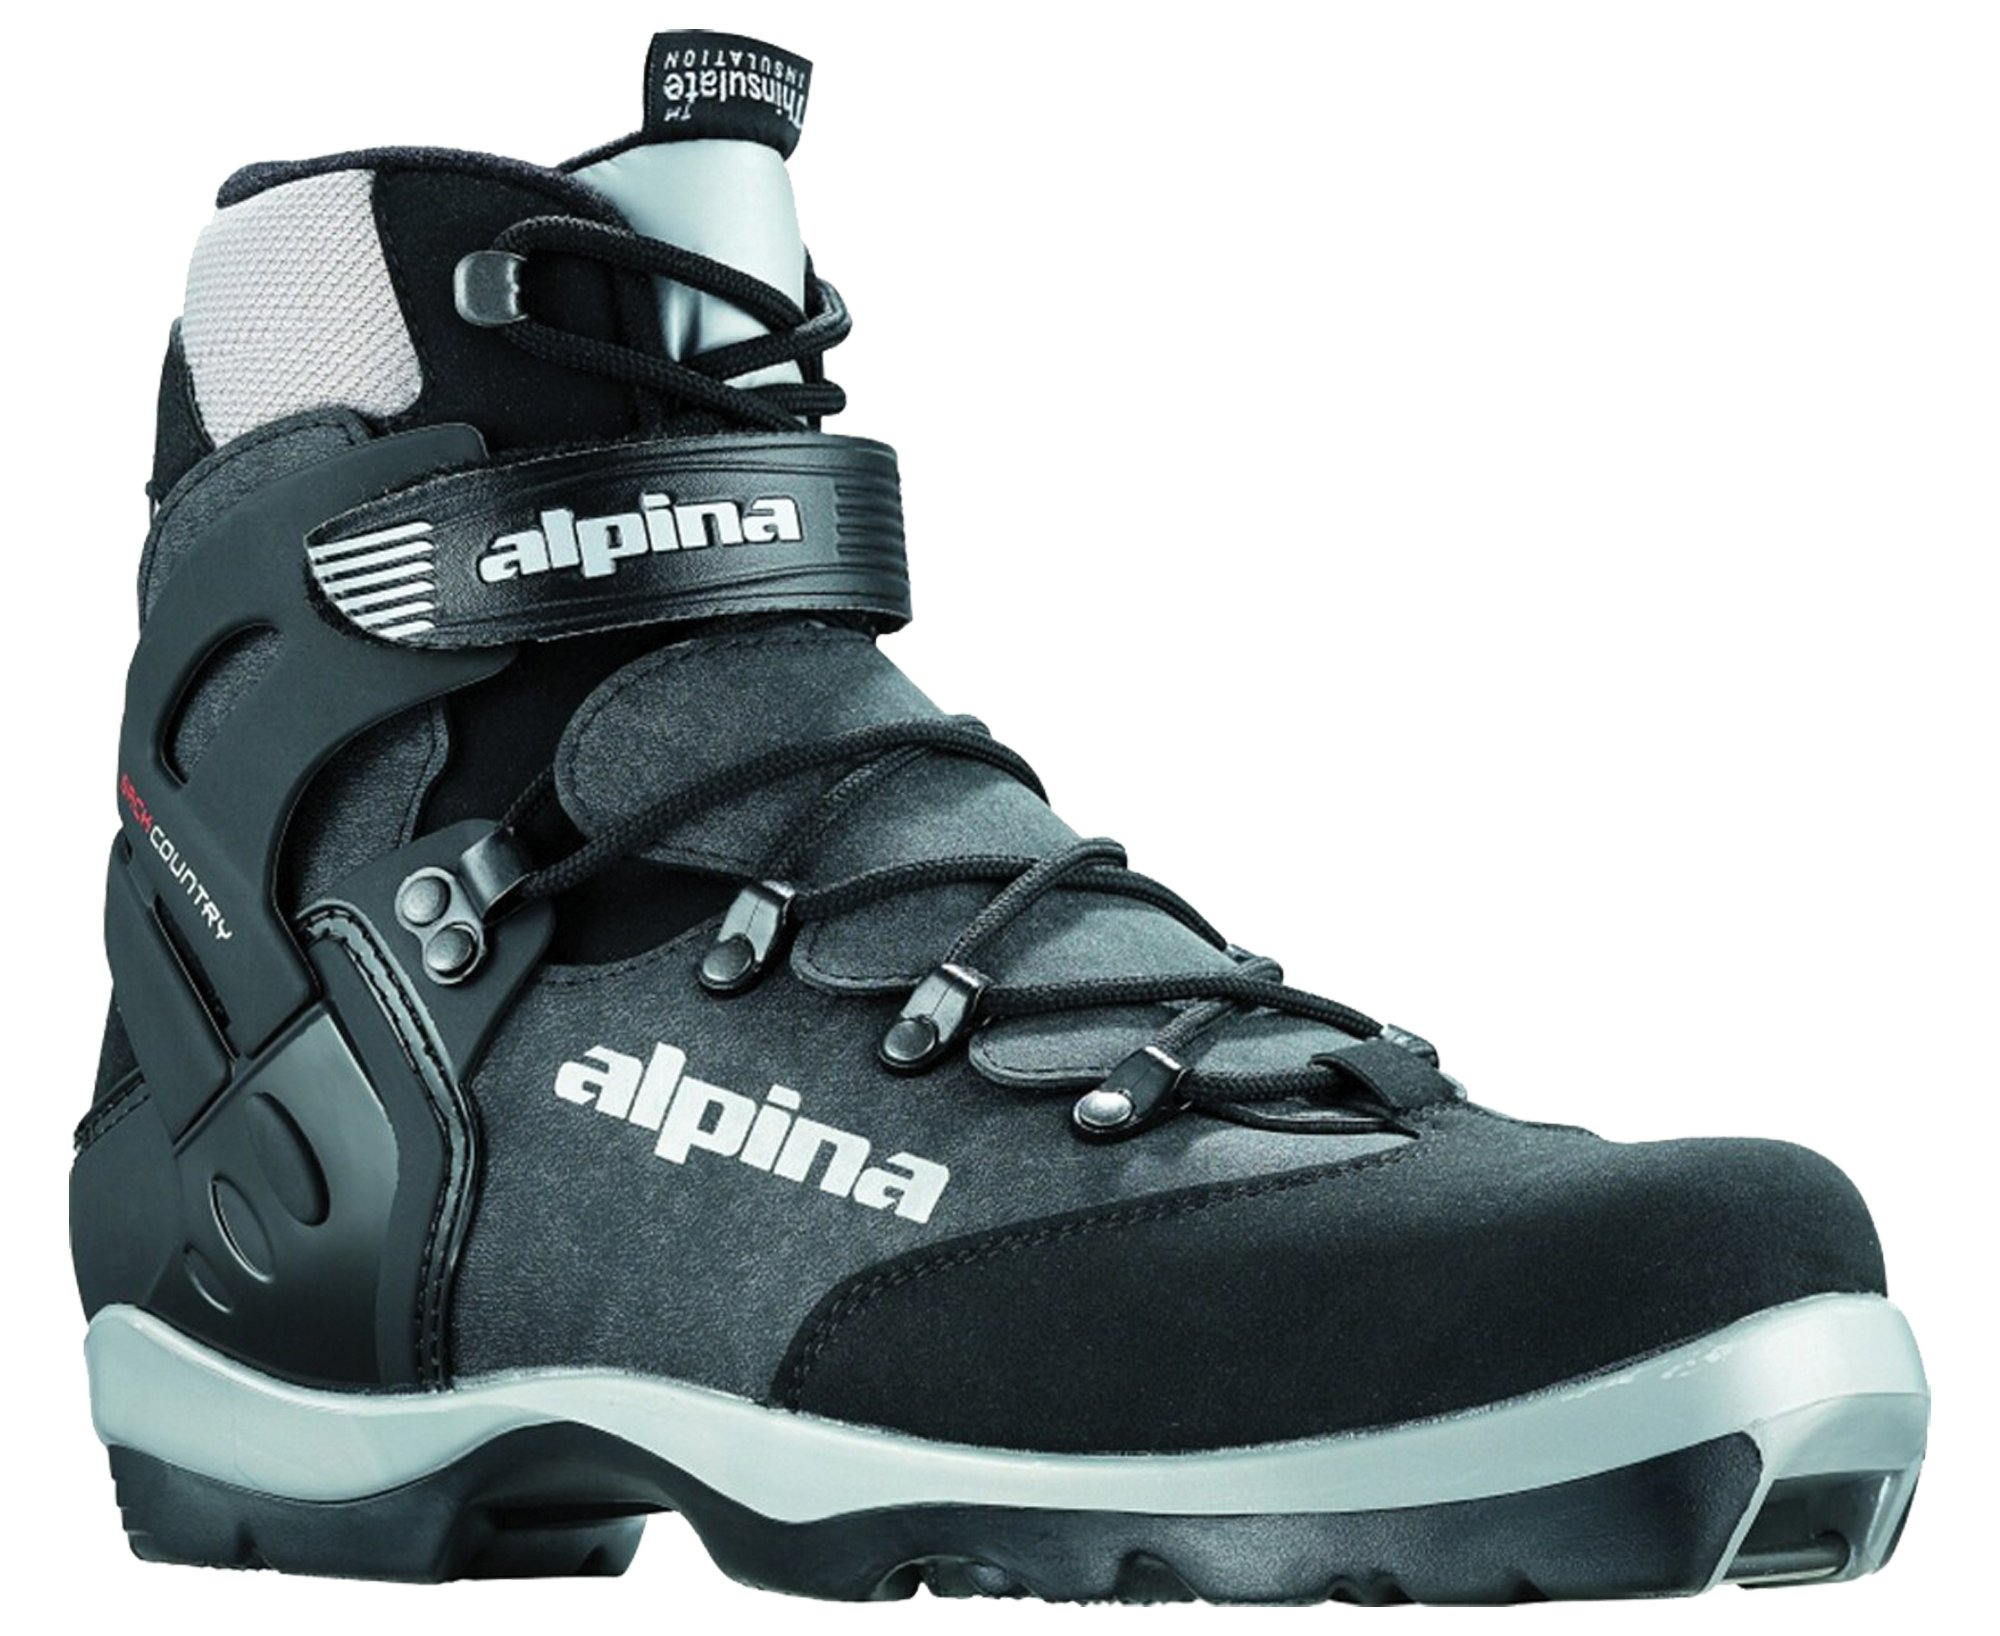 Alpina BC 1550 Back Country Nordic Cross Country Ski Boots for NNN BC bindings